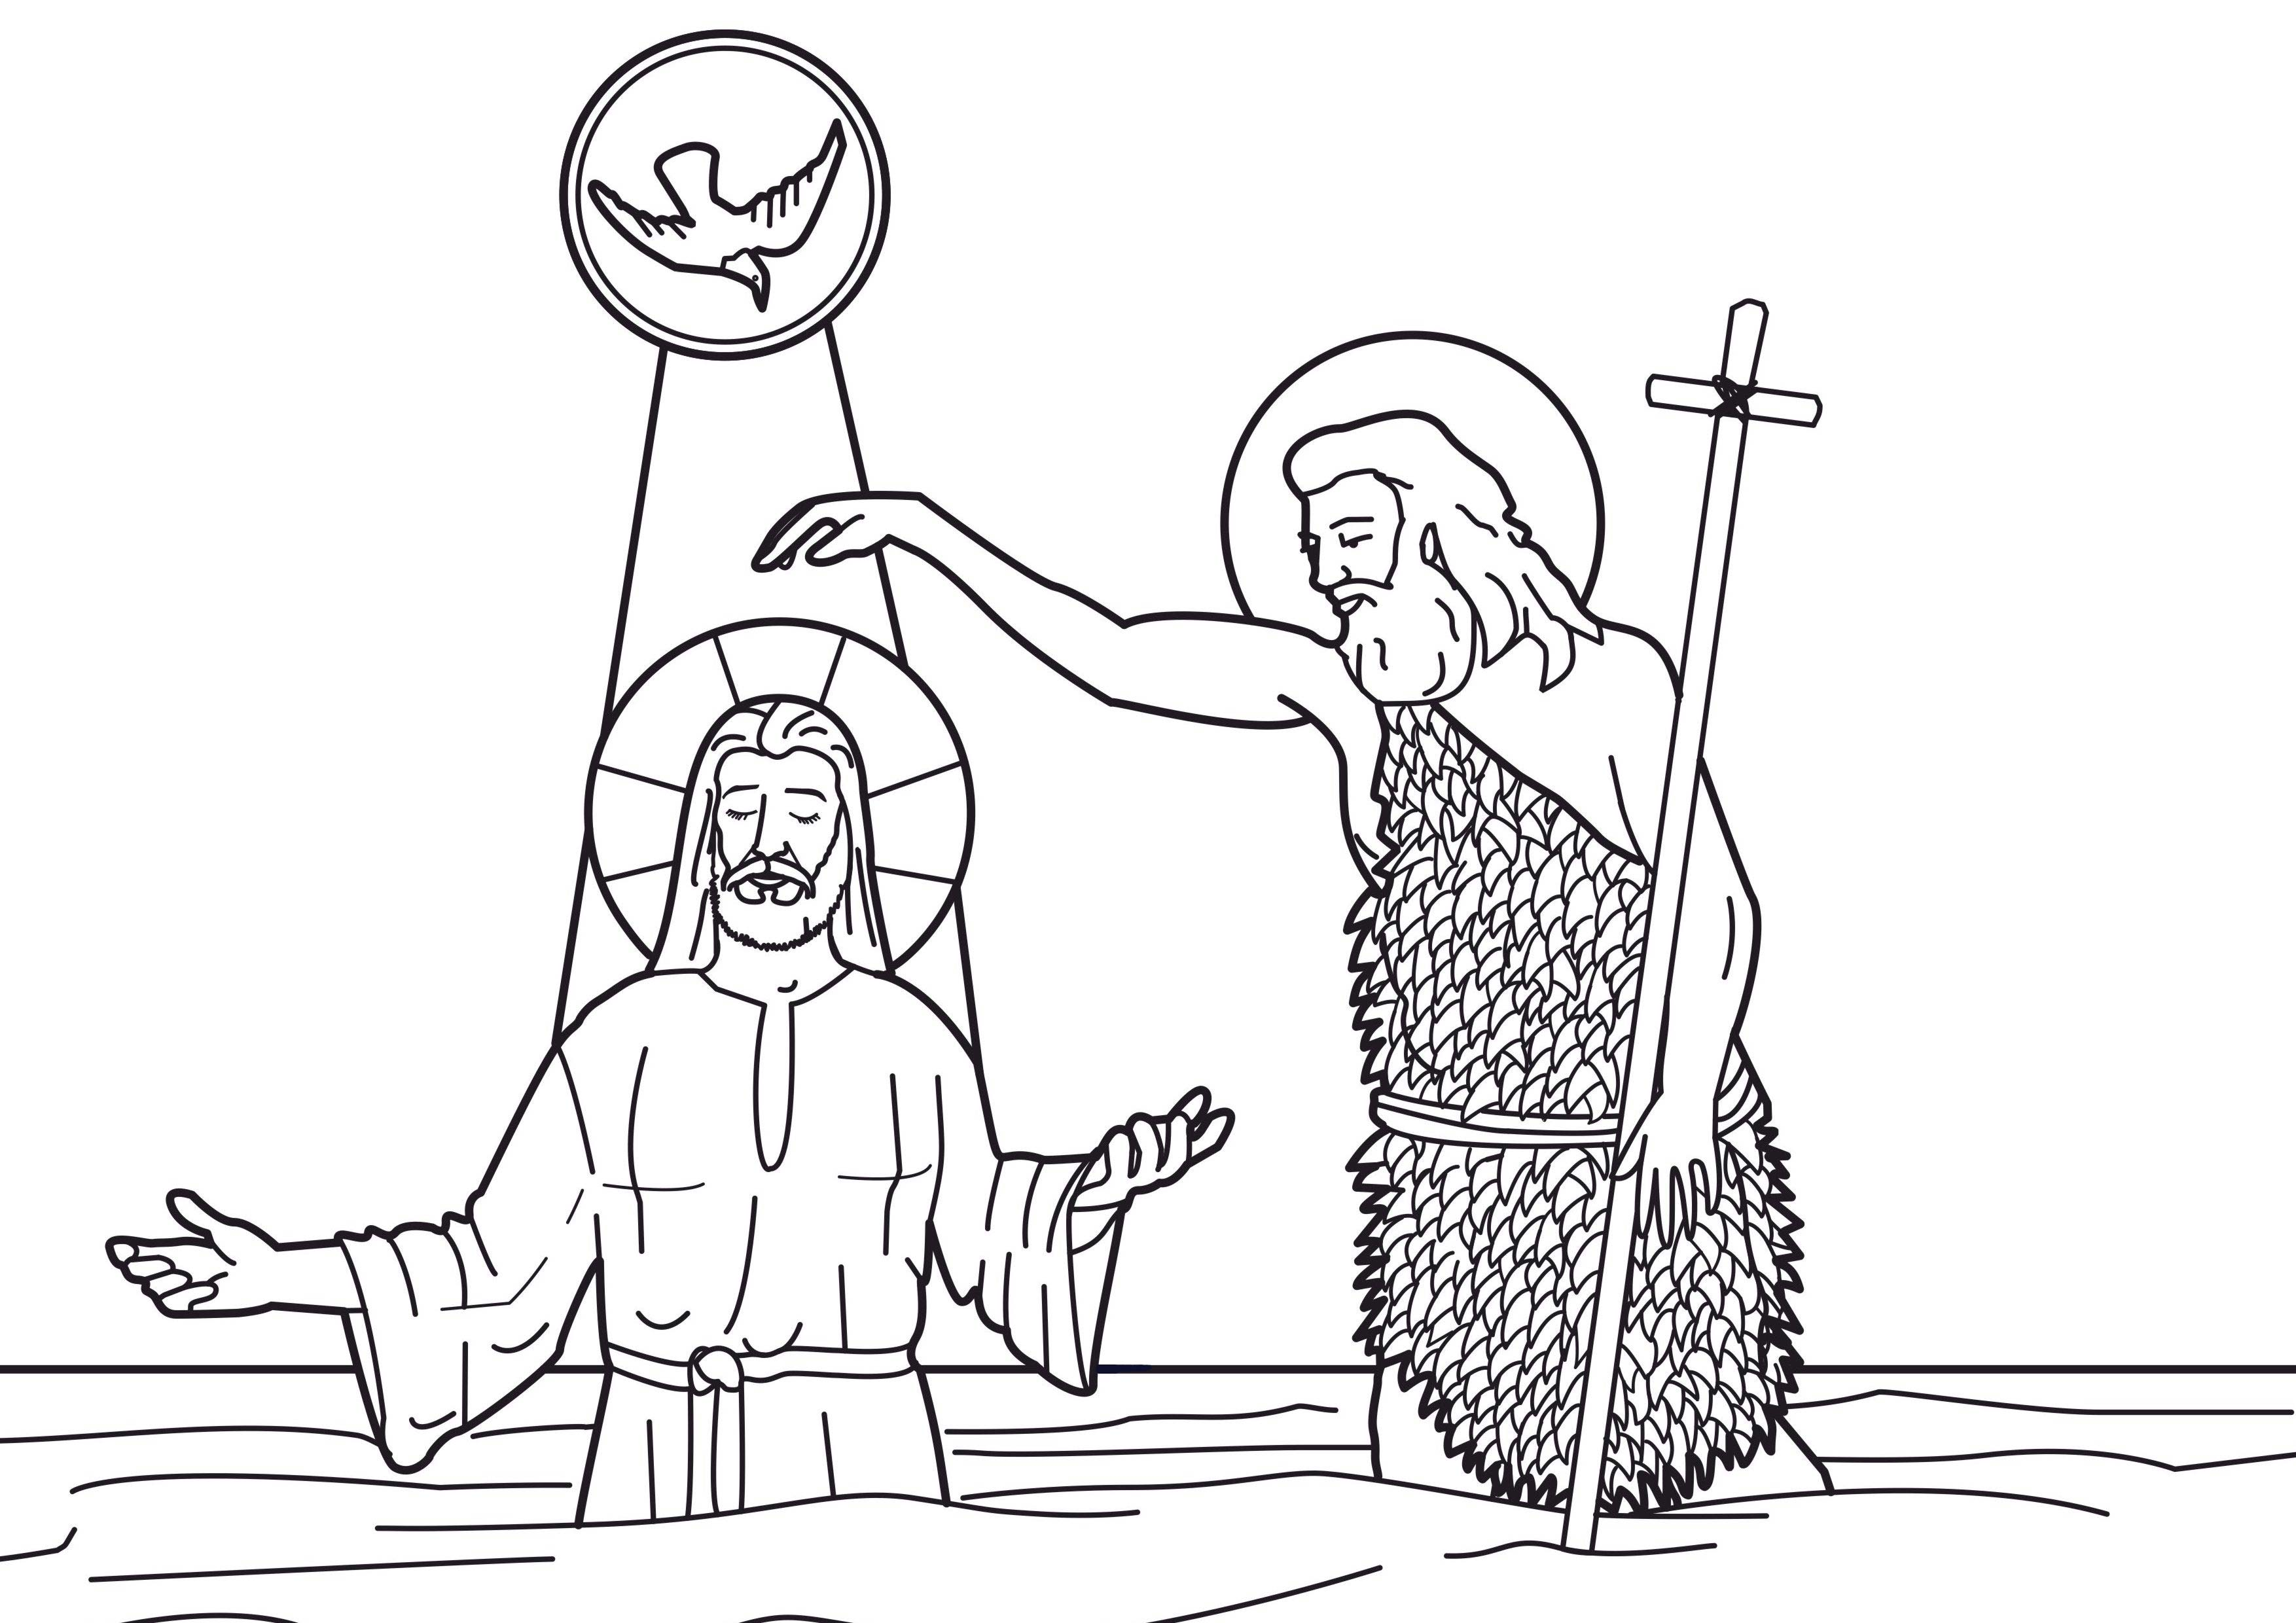 jesus being baptized coloring page - image coloring the baptism of jesus christ 01